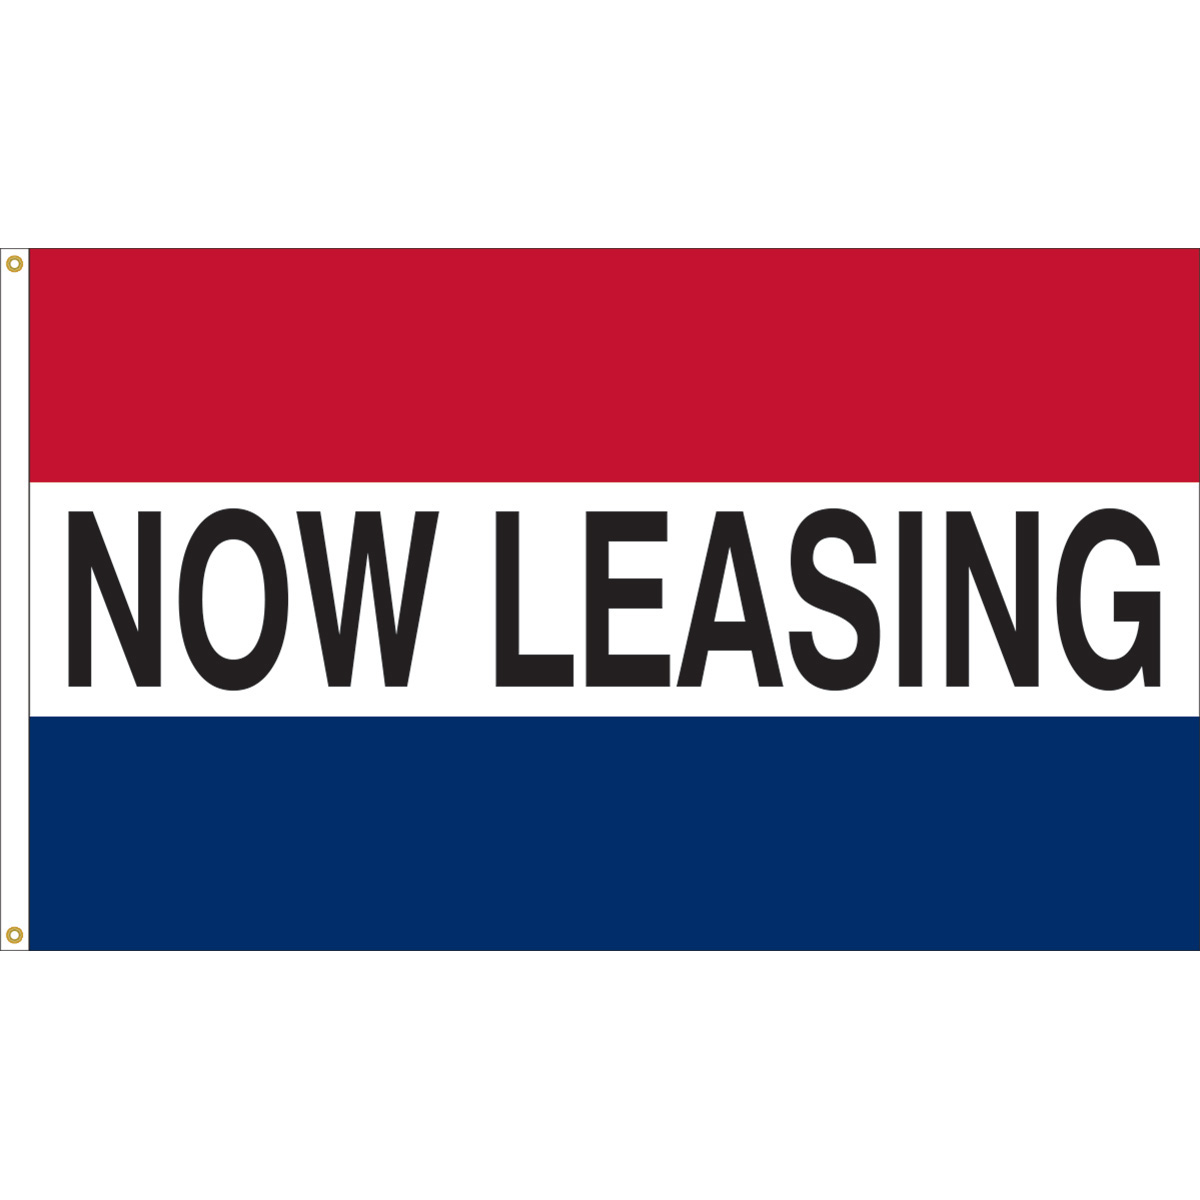 now leasing 3'x5' flag